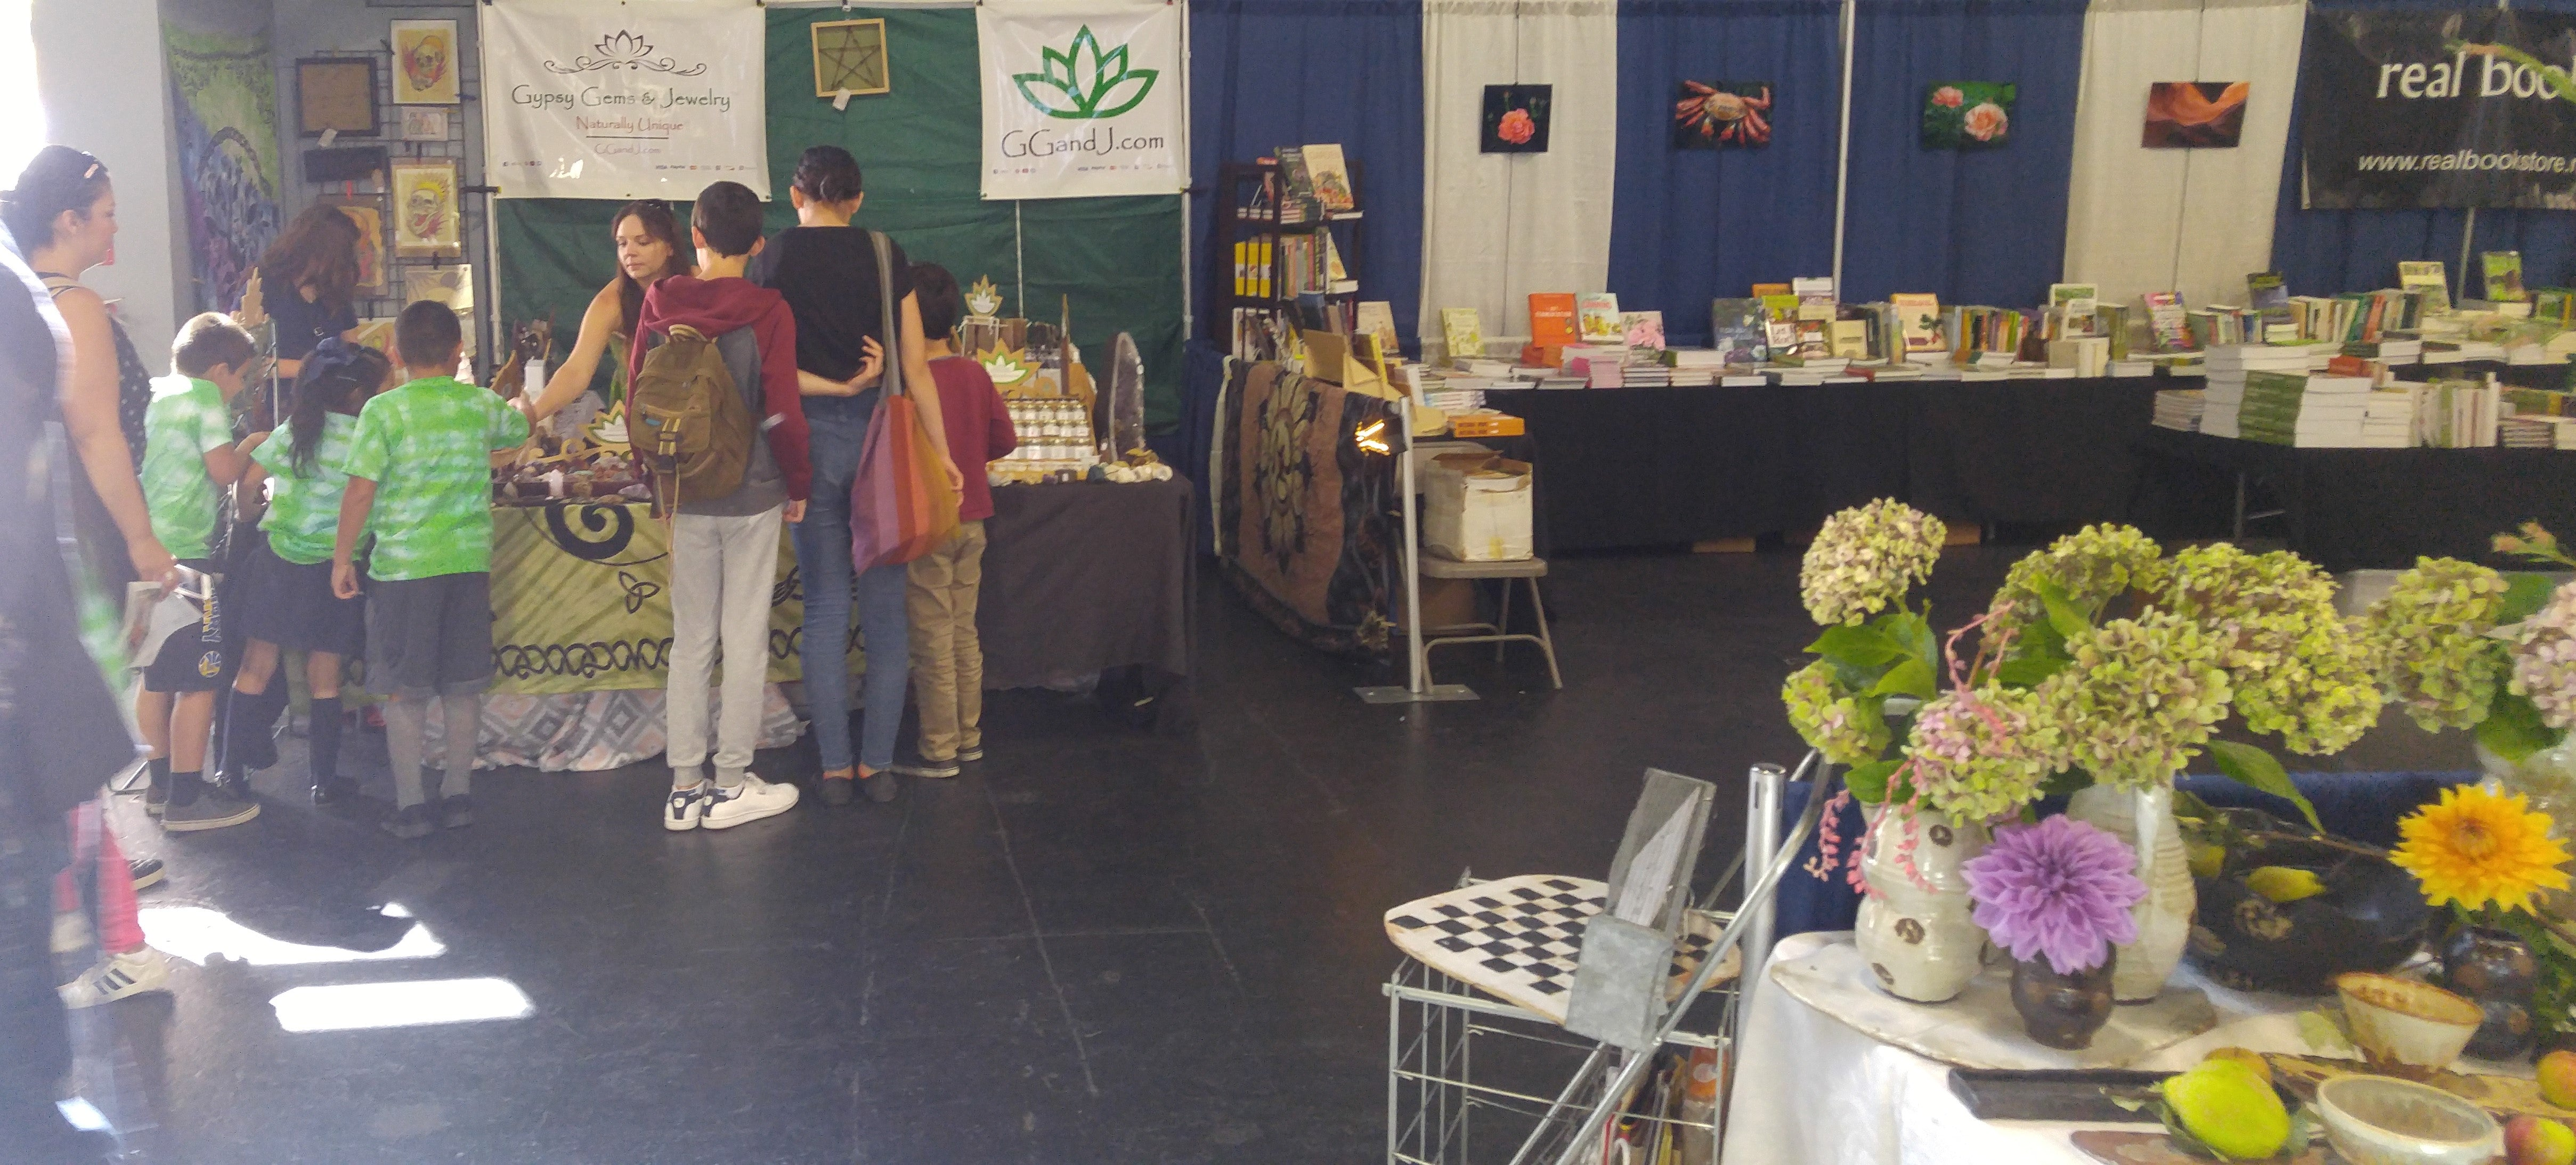 Nation Heirloom Exposition Grand Pavileon ggandj.com Booth Customers Mother of Earth News